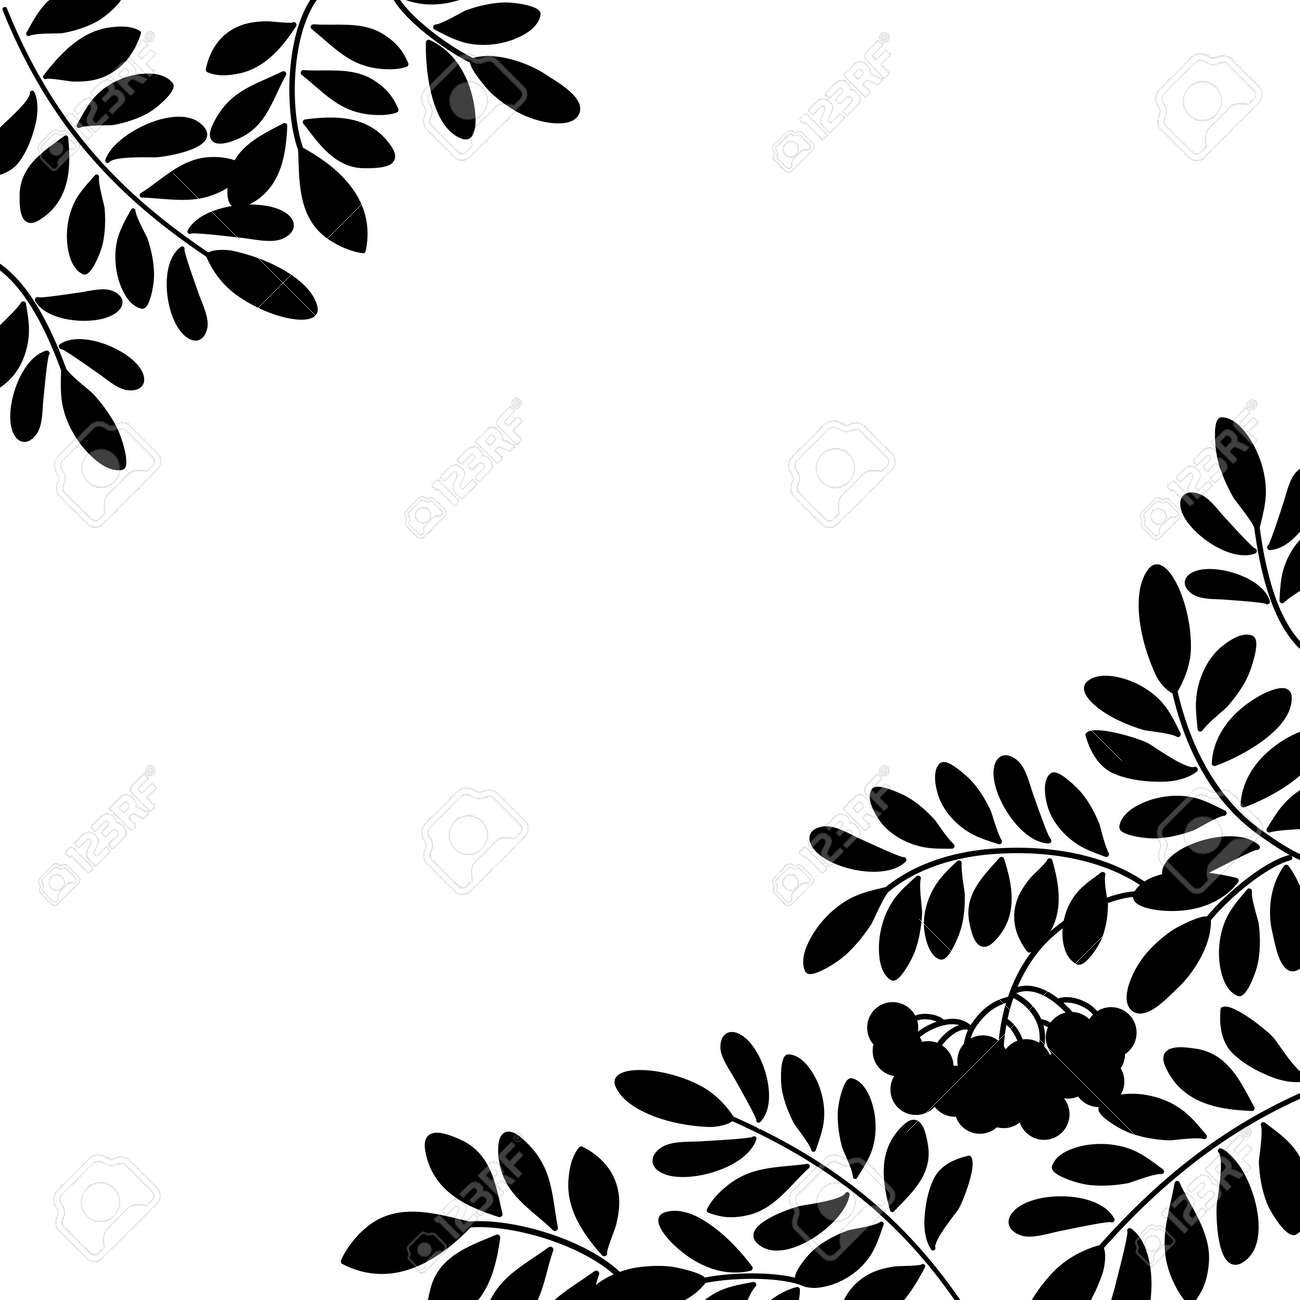 Black and white background, isolated silhouette of rowanberry branches and berries Vector - 19628018